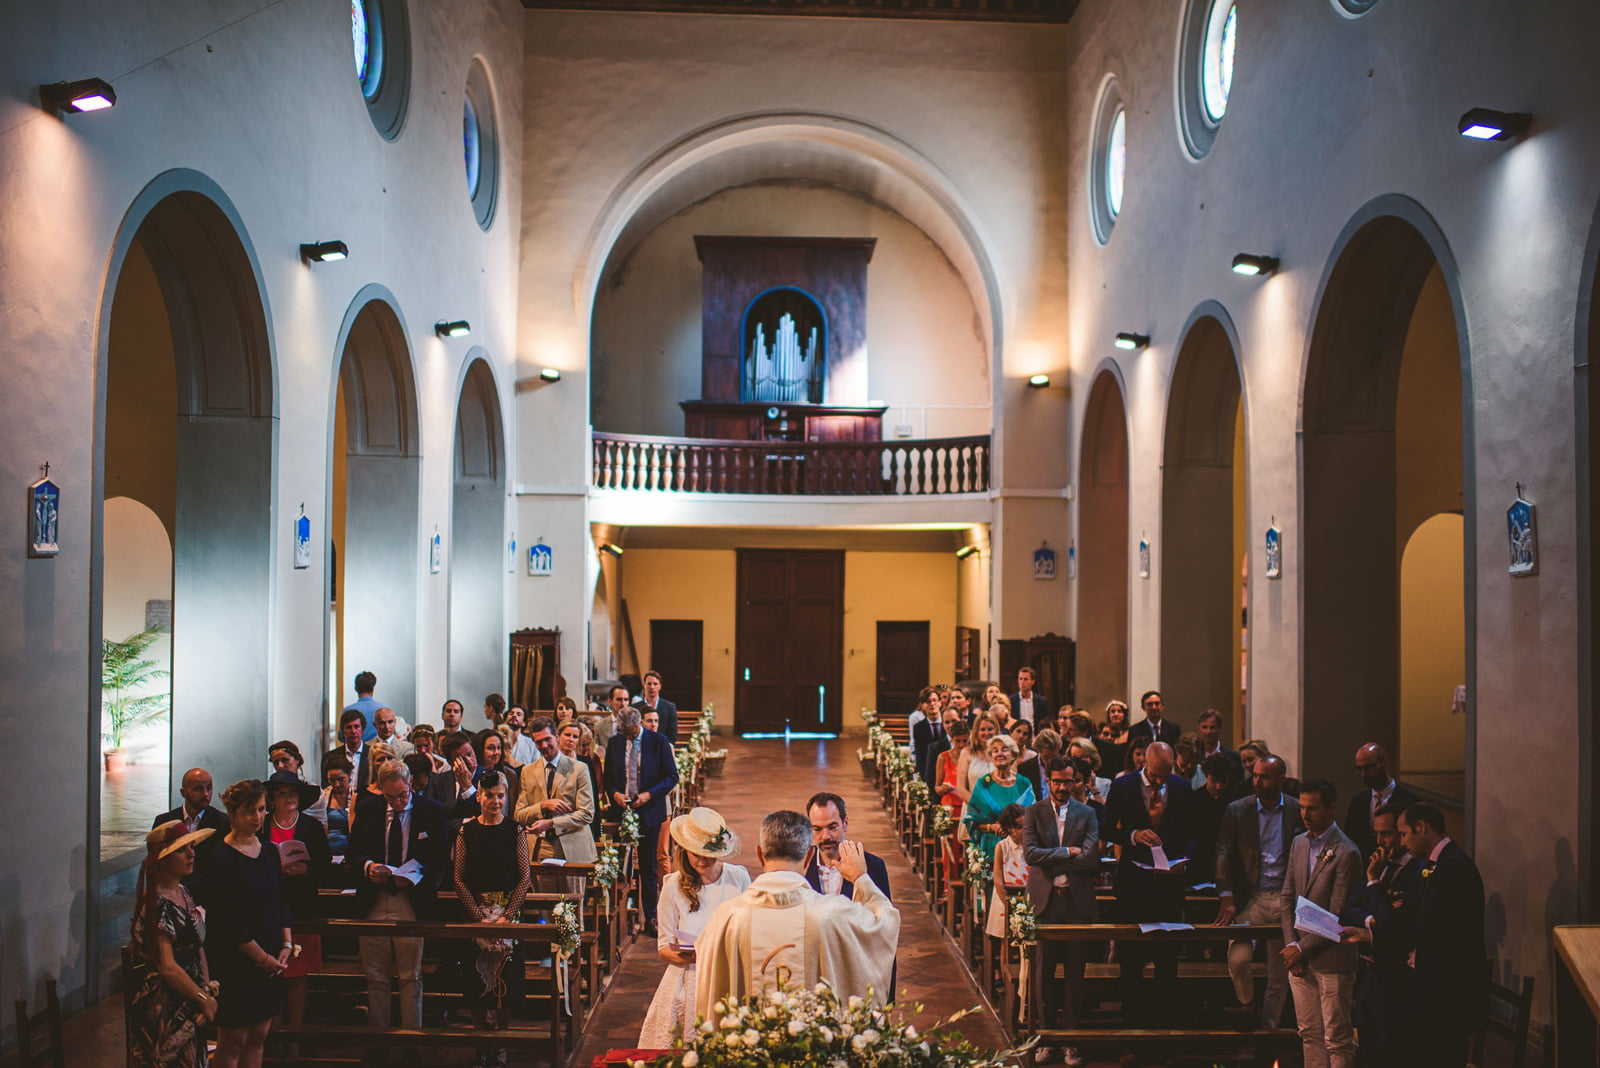 Lovely Wedding in Villa at Rignana by Federico Pannacci Wedding Photographer 47